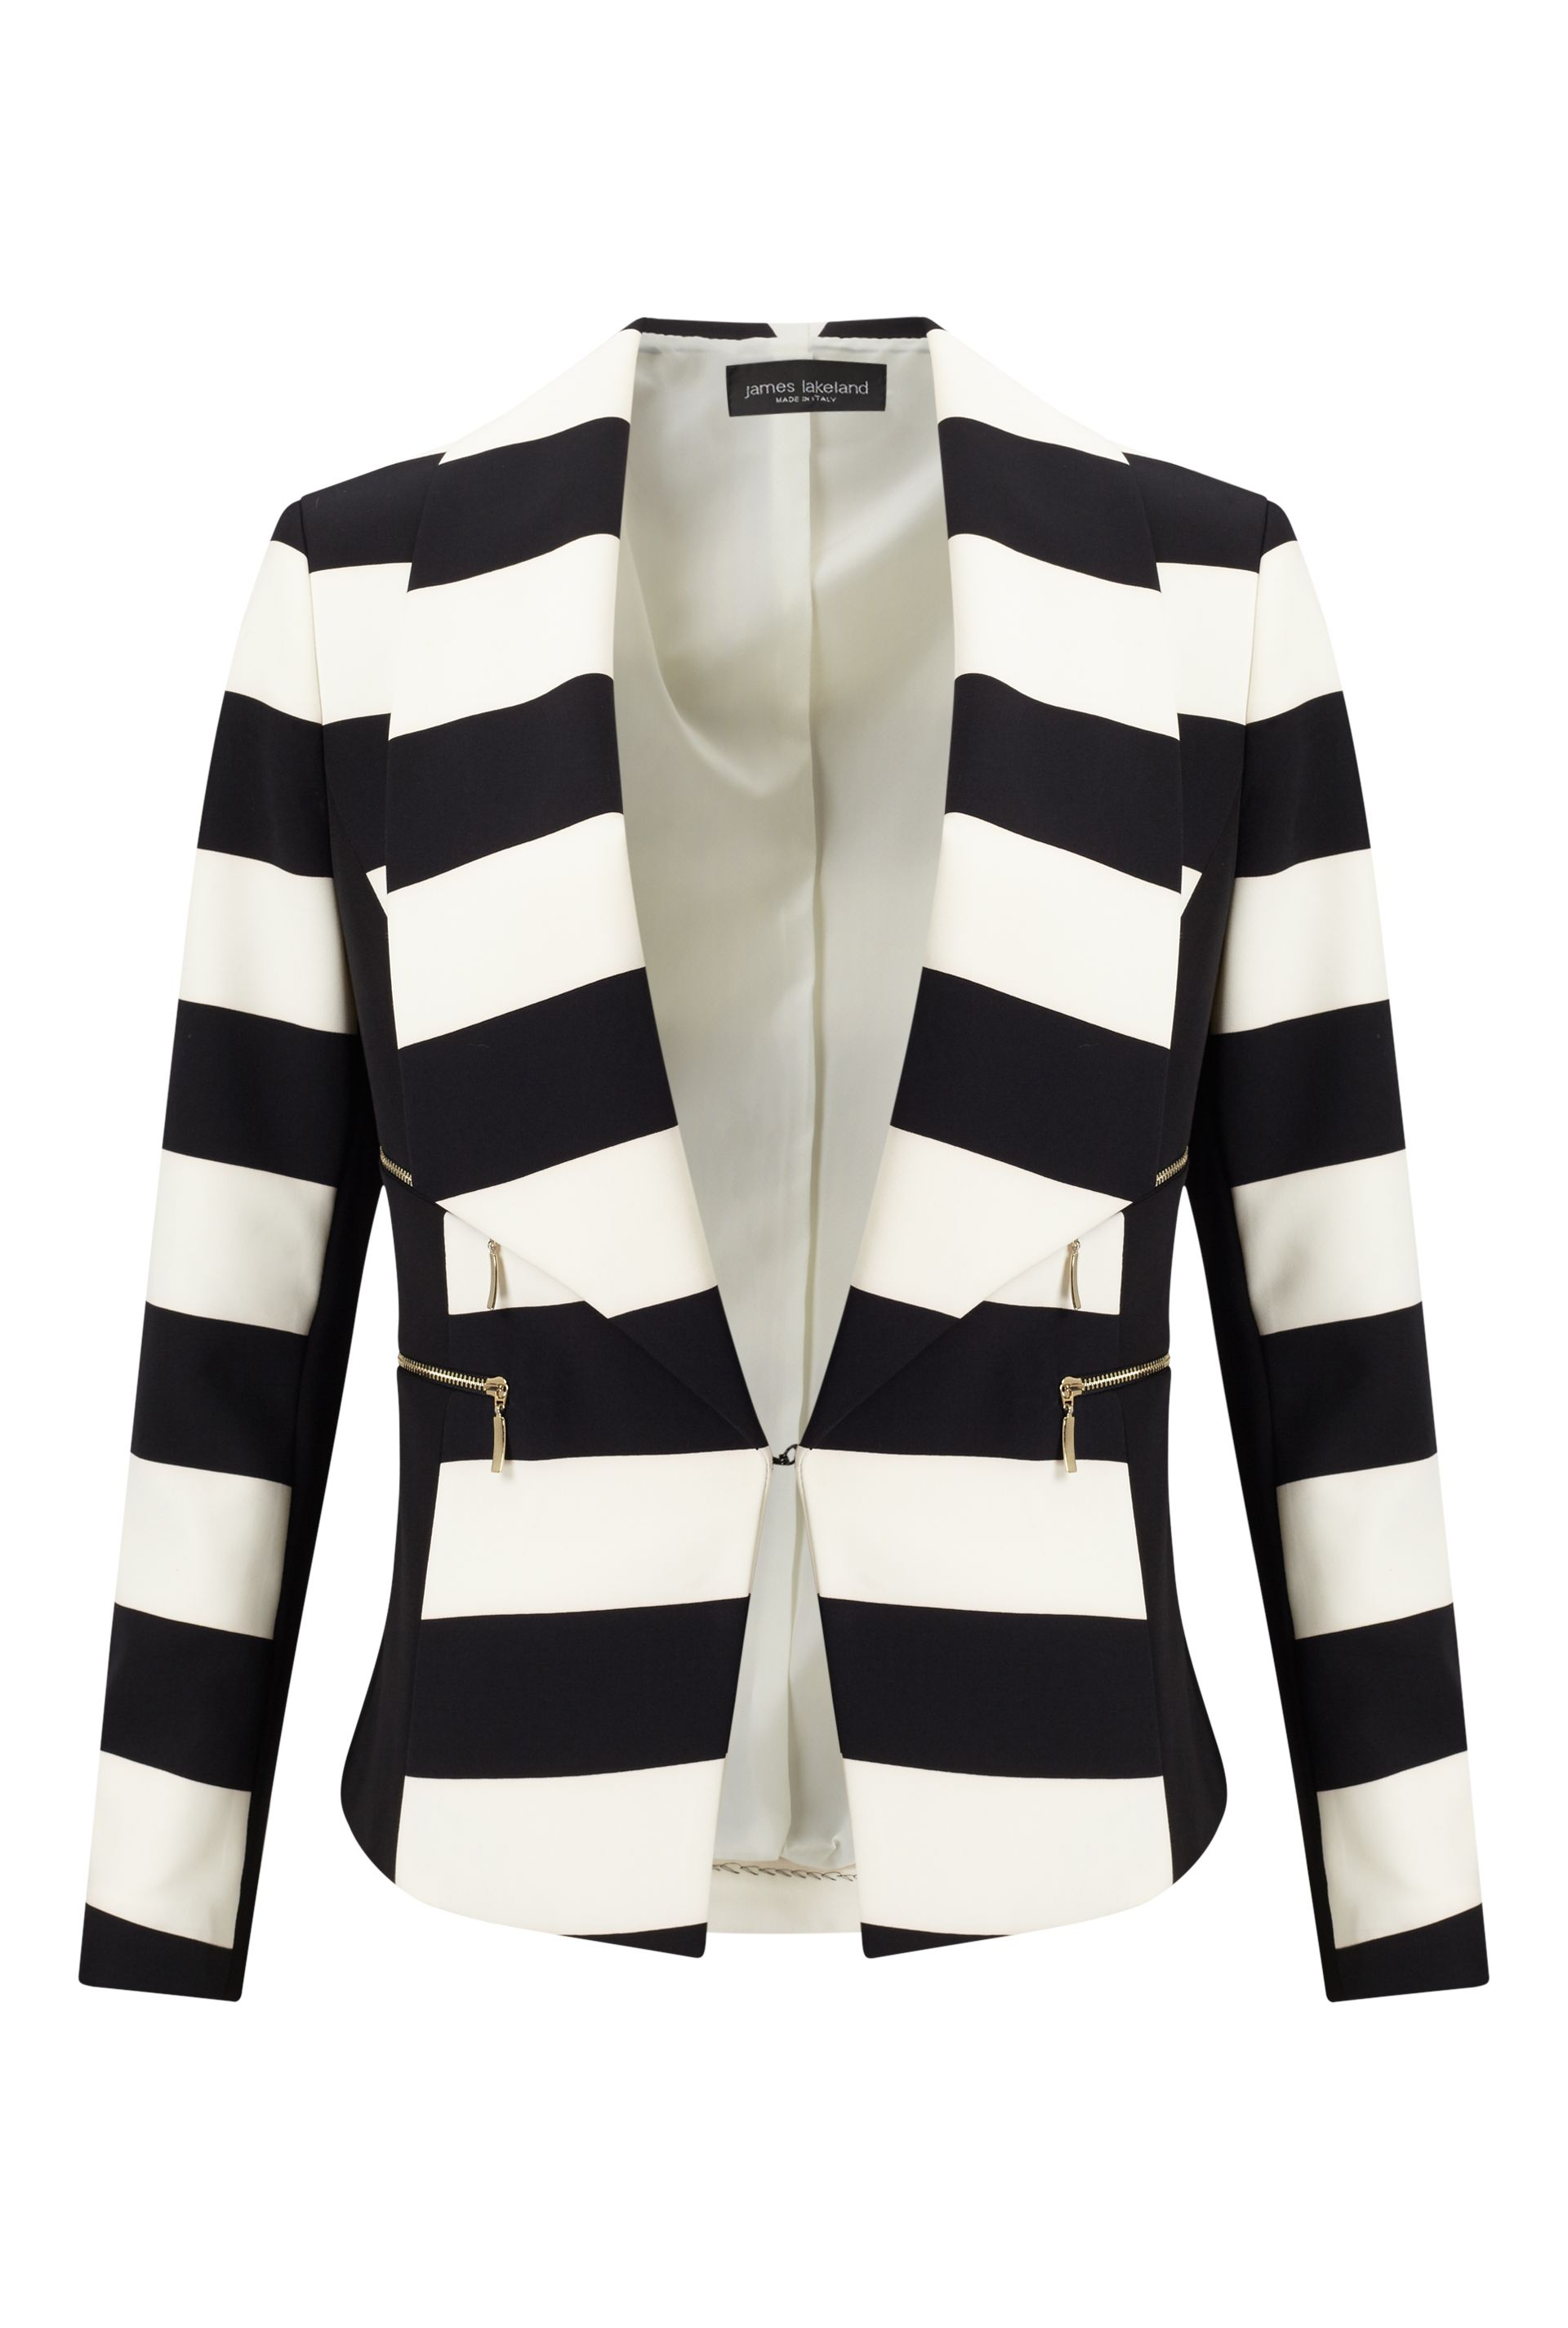 James Lakeland Stripe Blazer Jacket, Black